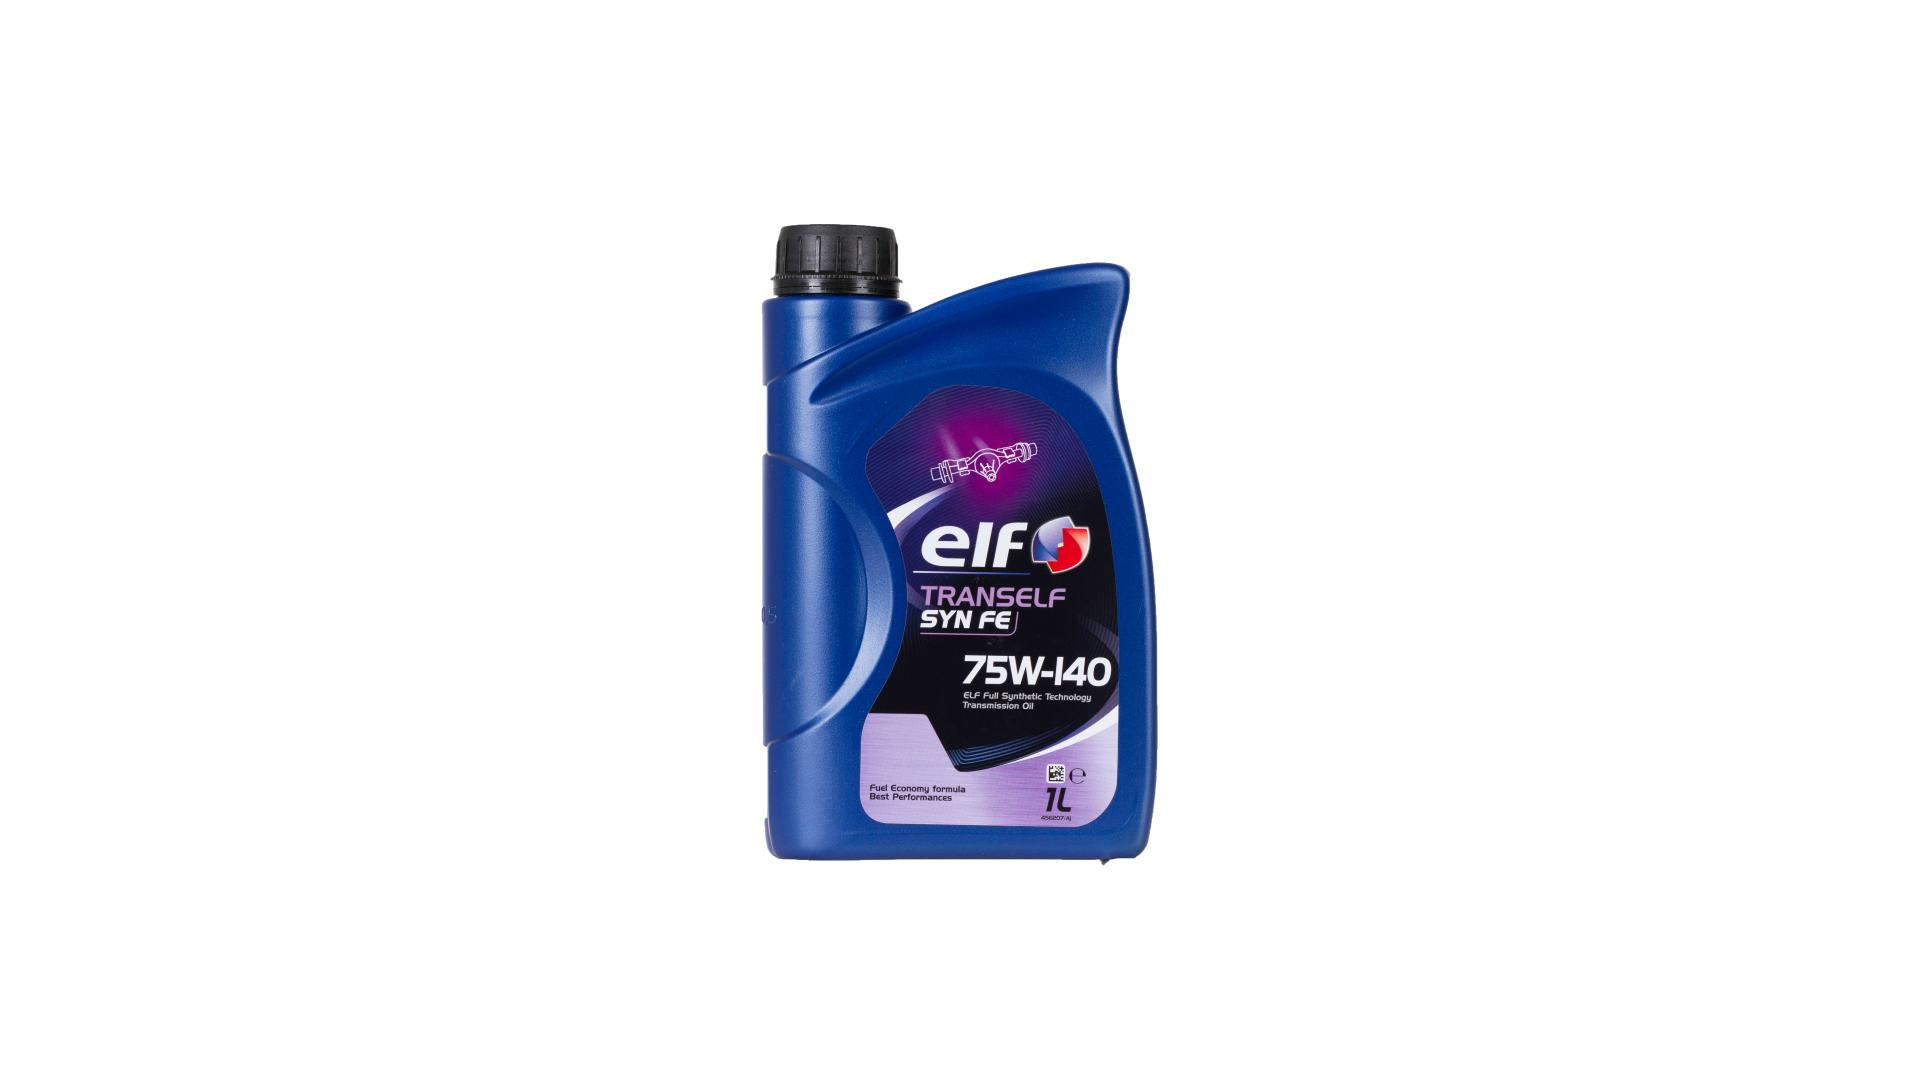 Elf 75w-140 Tranself Syn FE 1L (194750)